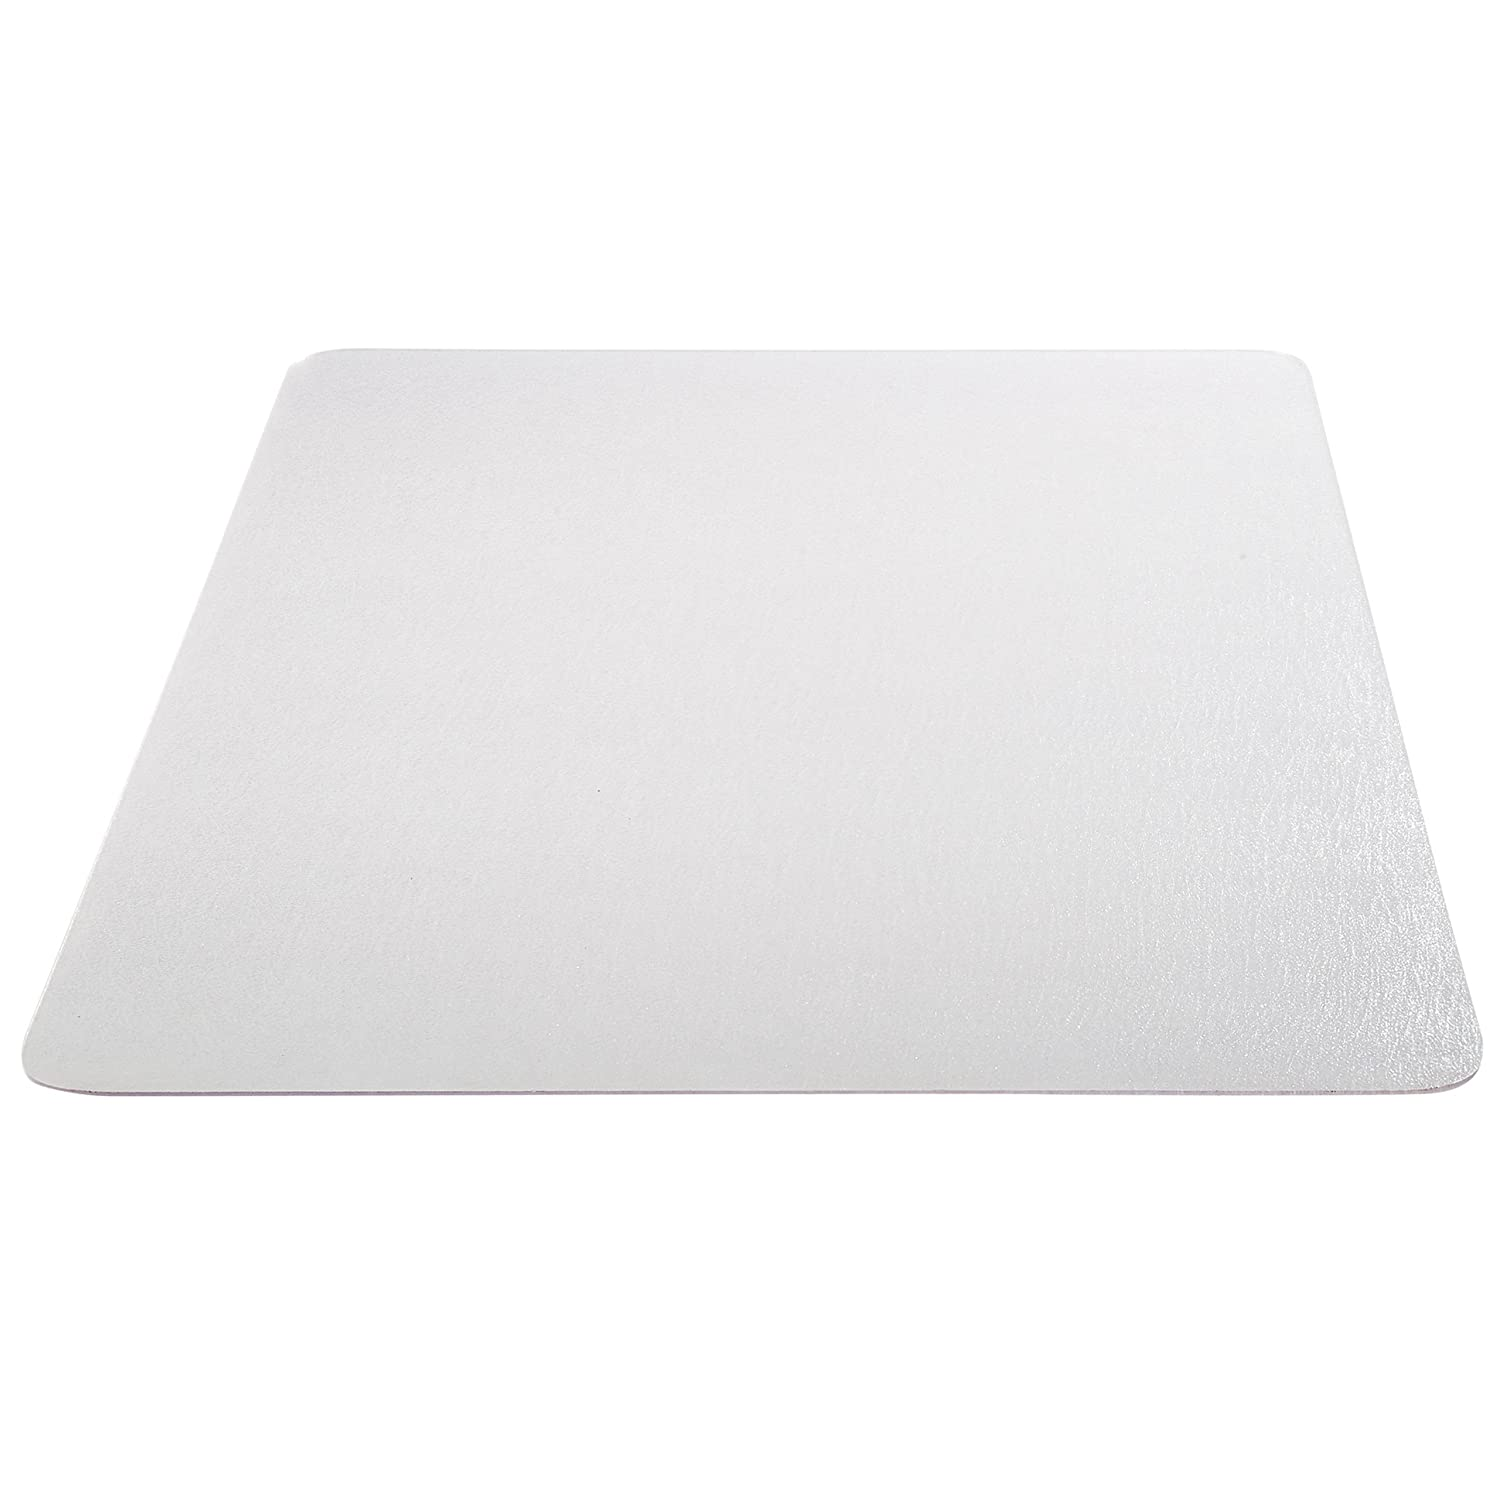 amazon com deflecto economat clear chair mat hard floor use